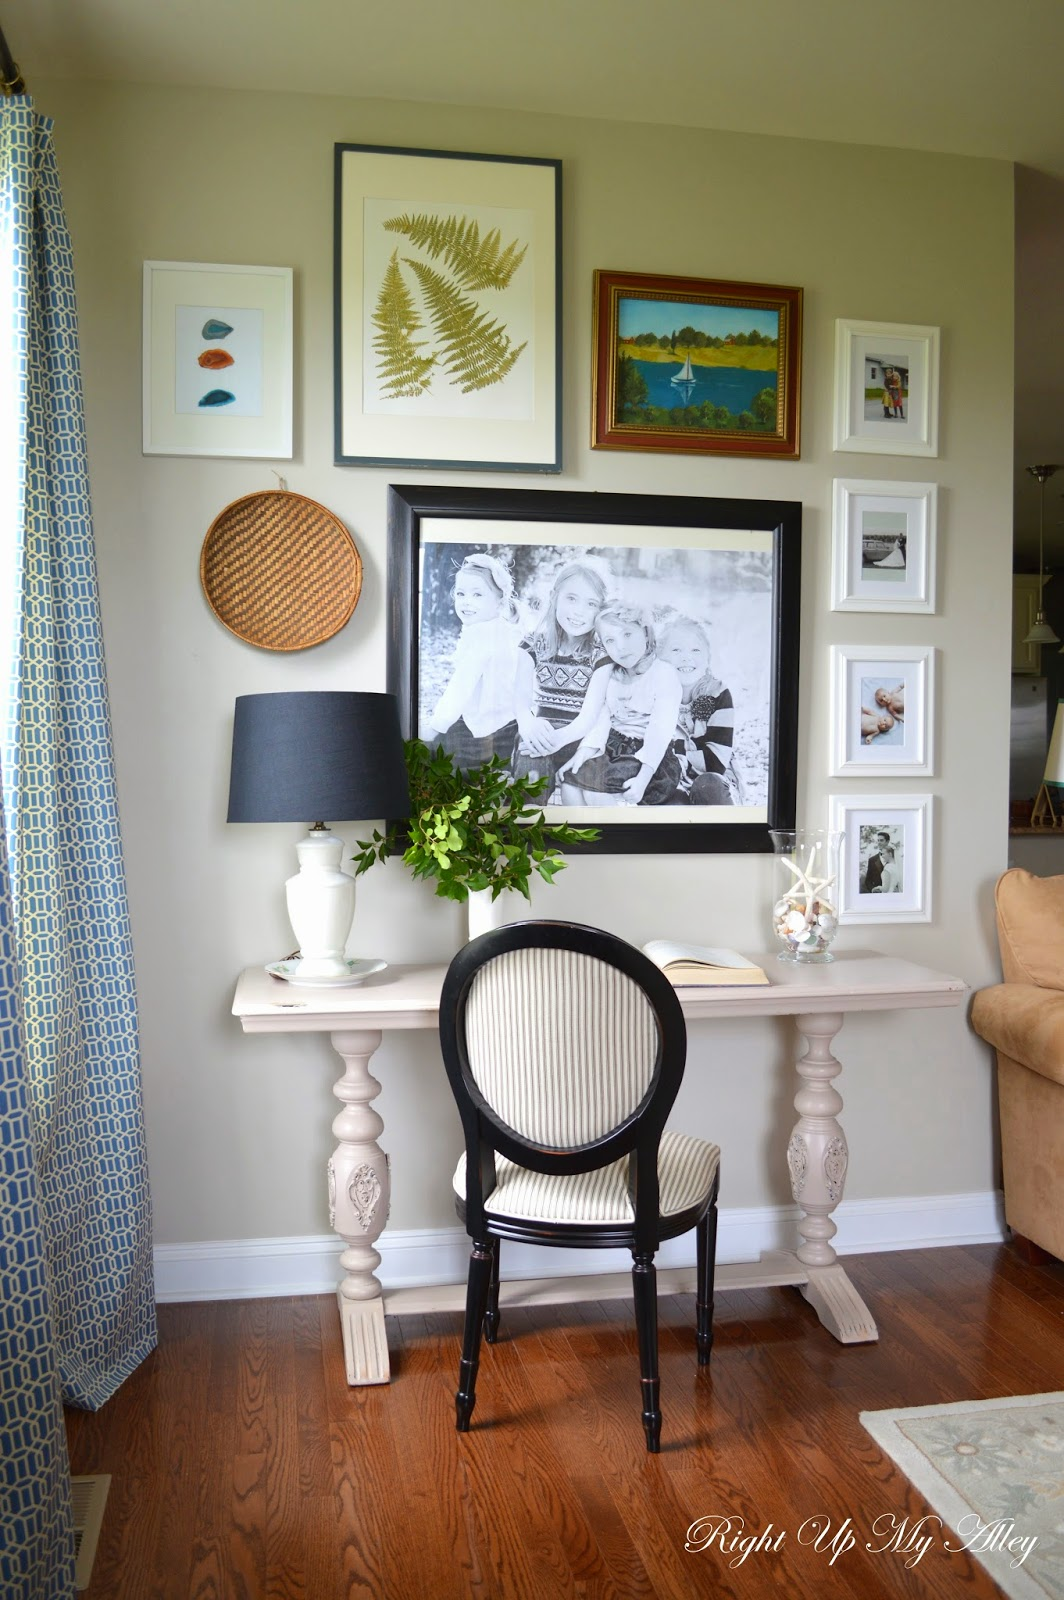 Gallery: Right Up My Alley: Family Room Gallery Wall